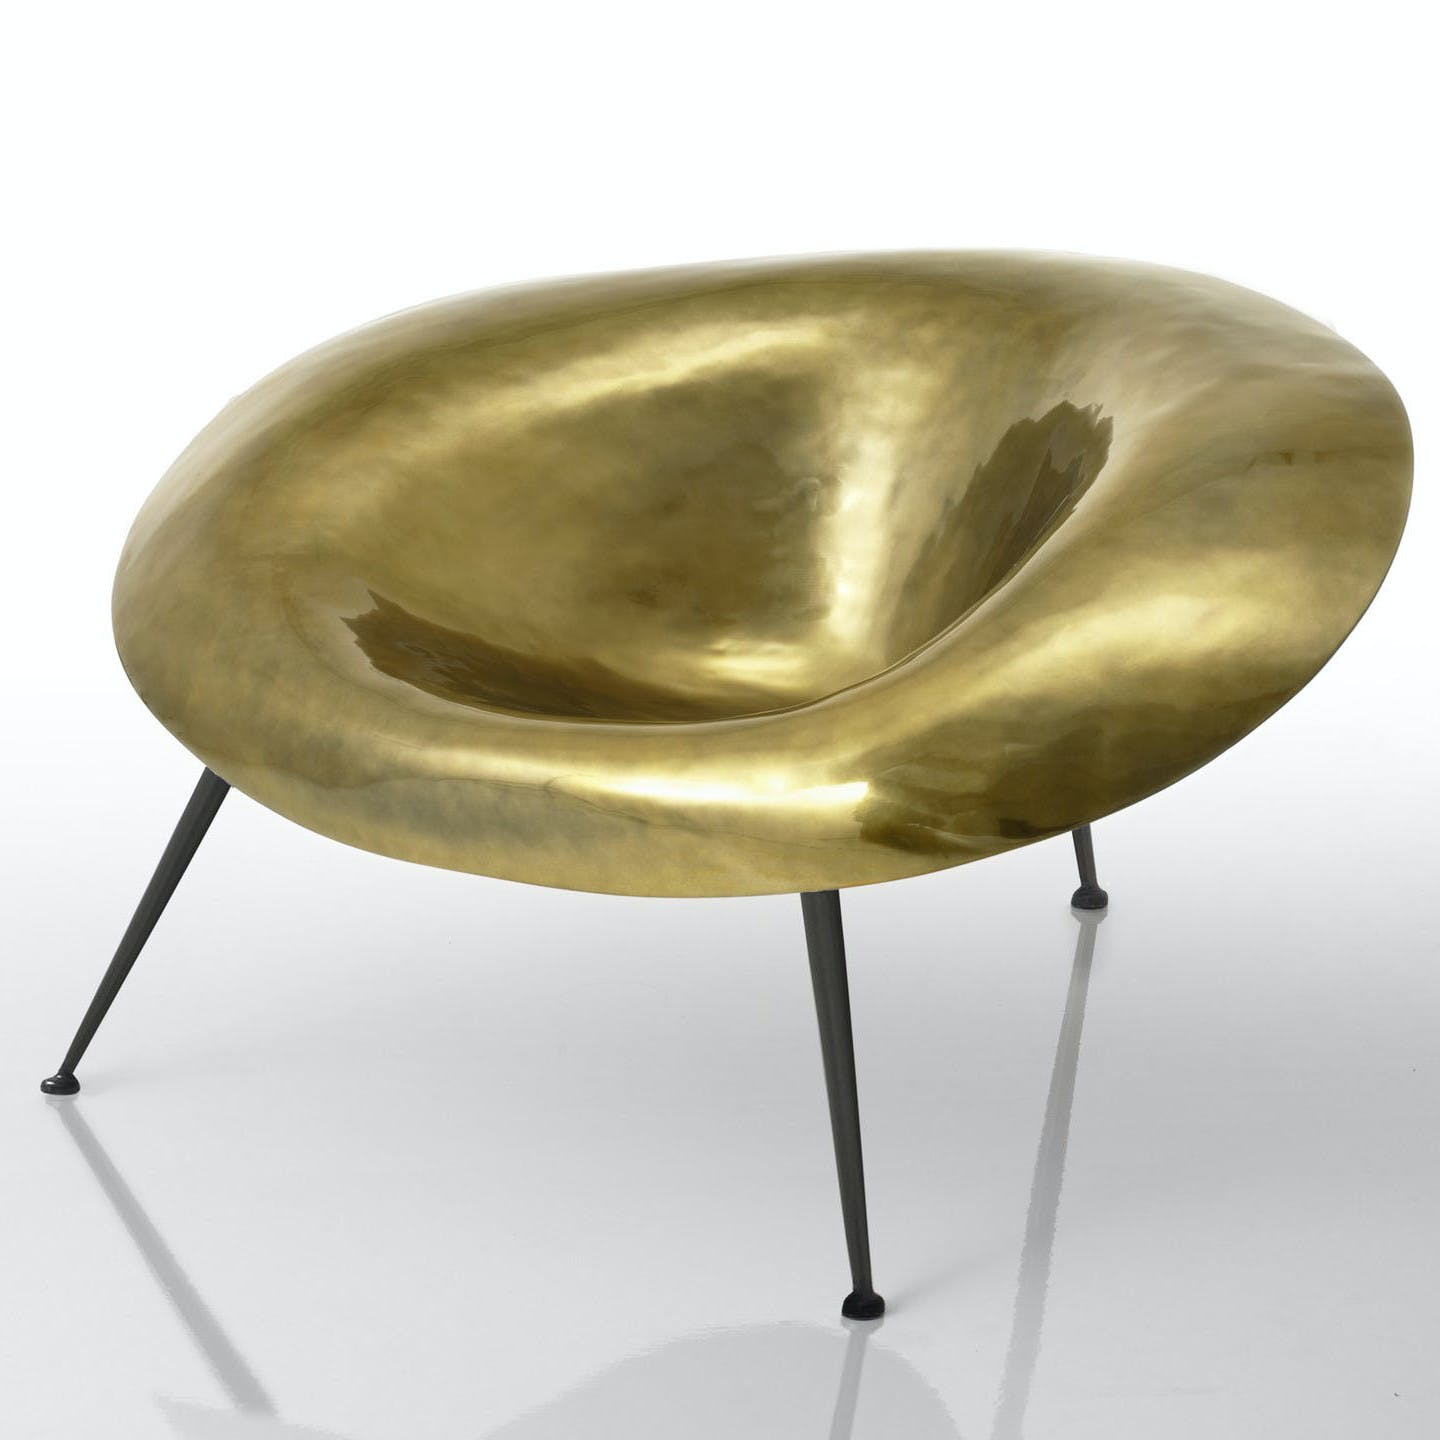 Imperfetto-lab-gold-nido-chair-haute-living